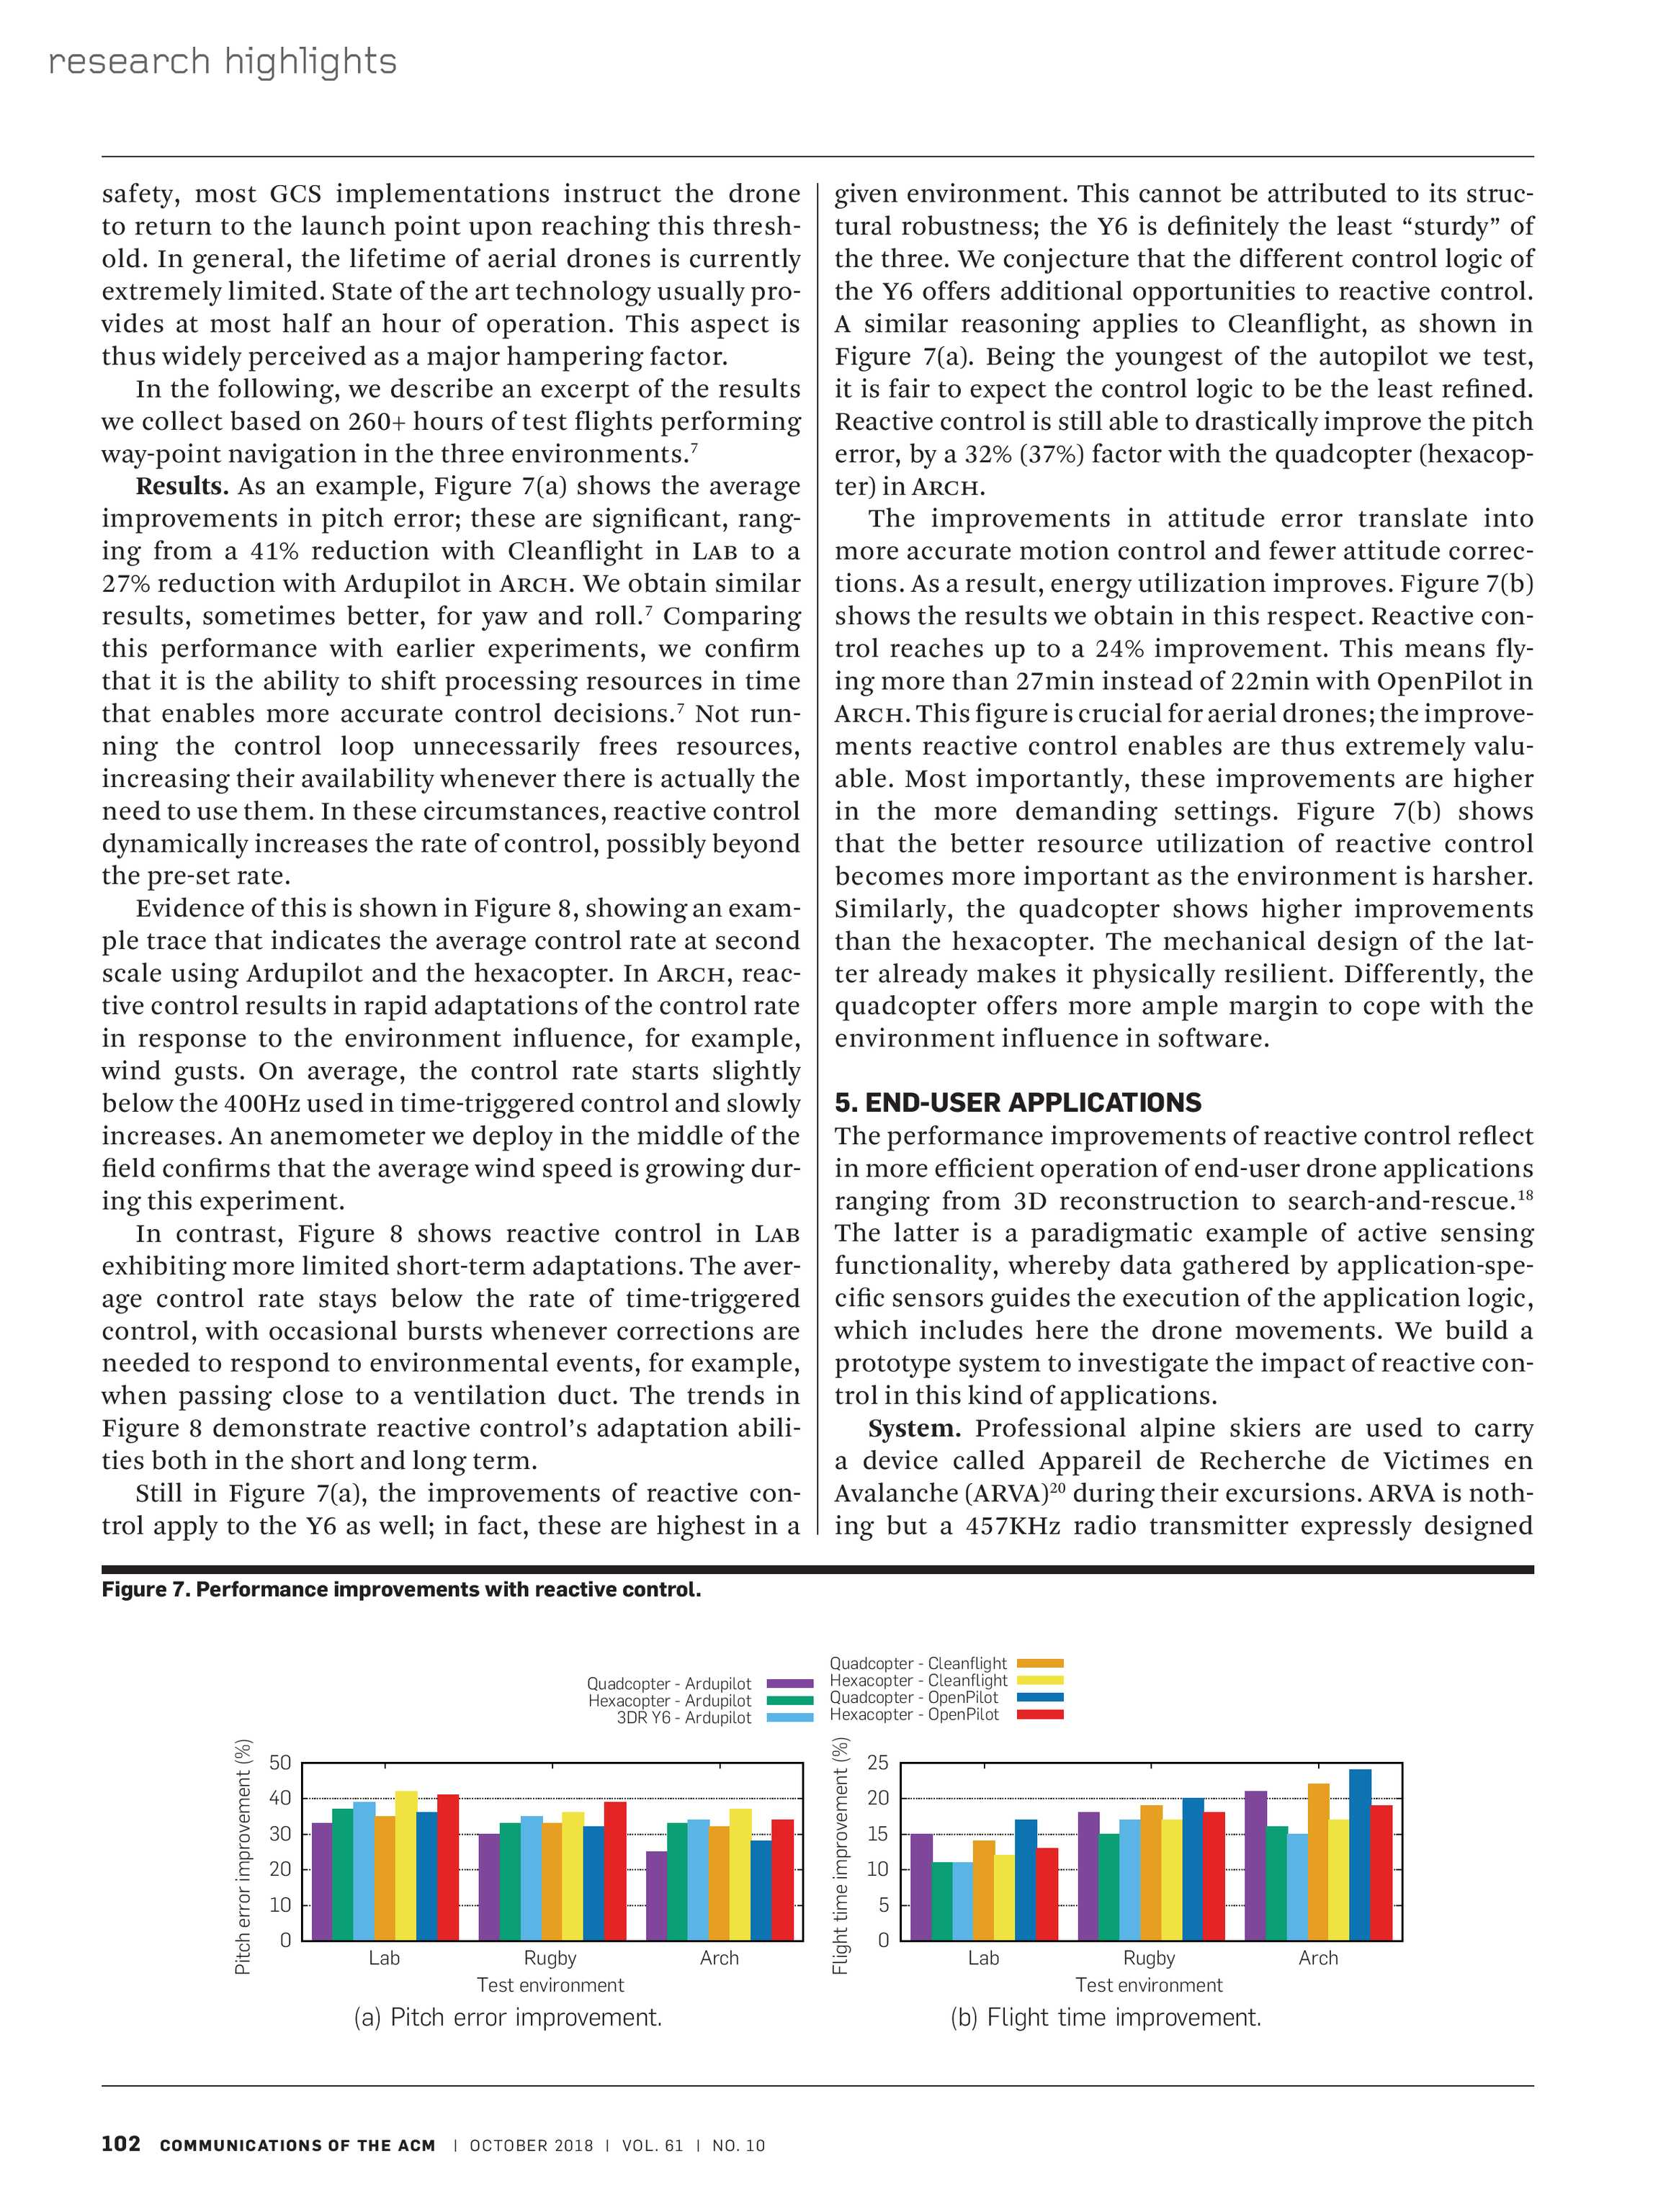 Communications of the ACM - October 2018 - page 102